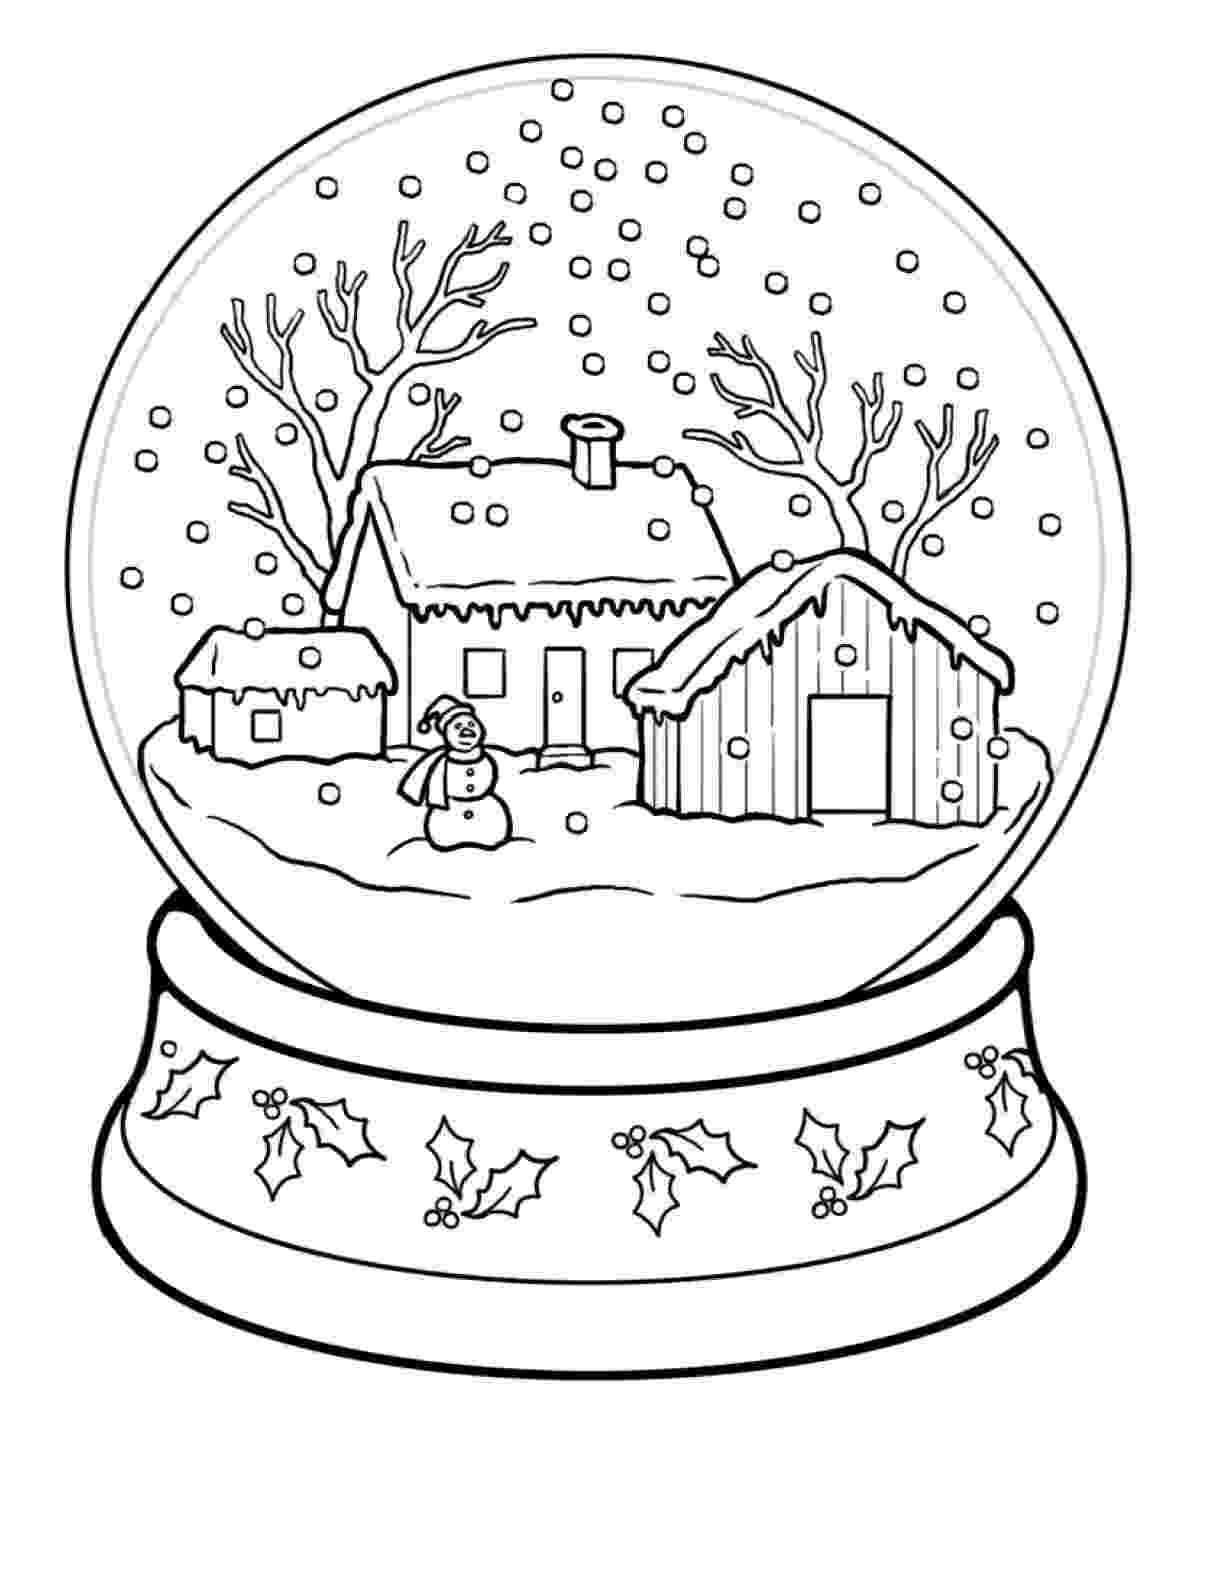 colouring sheets winter free winter printables winter colouring sheets